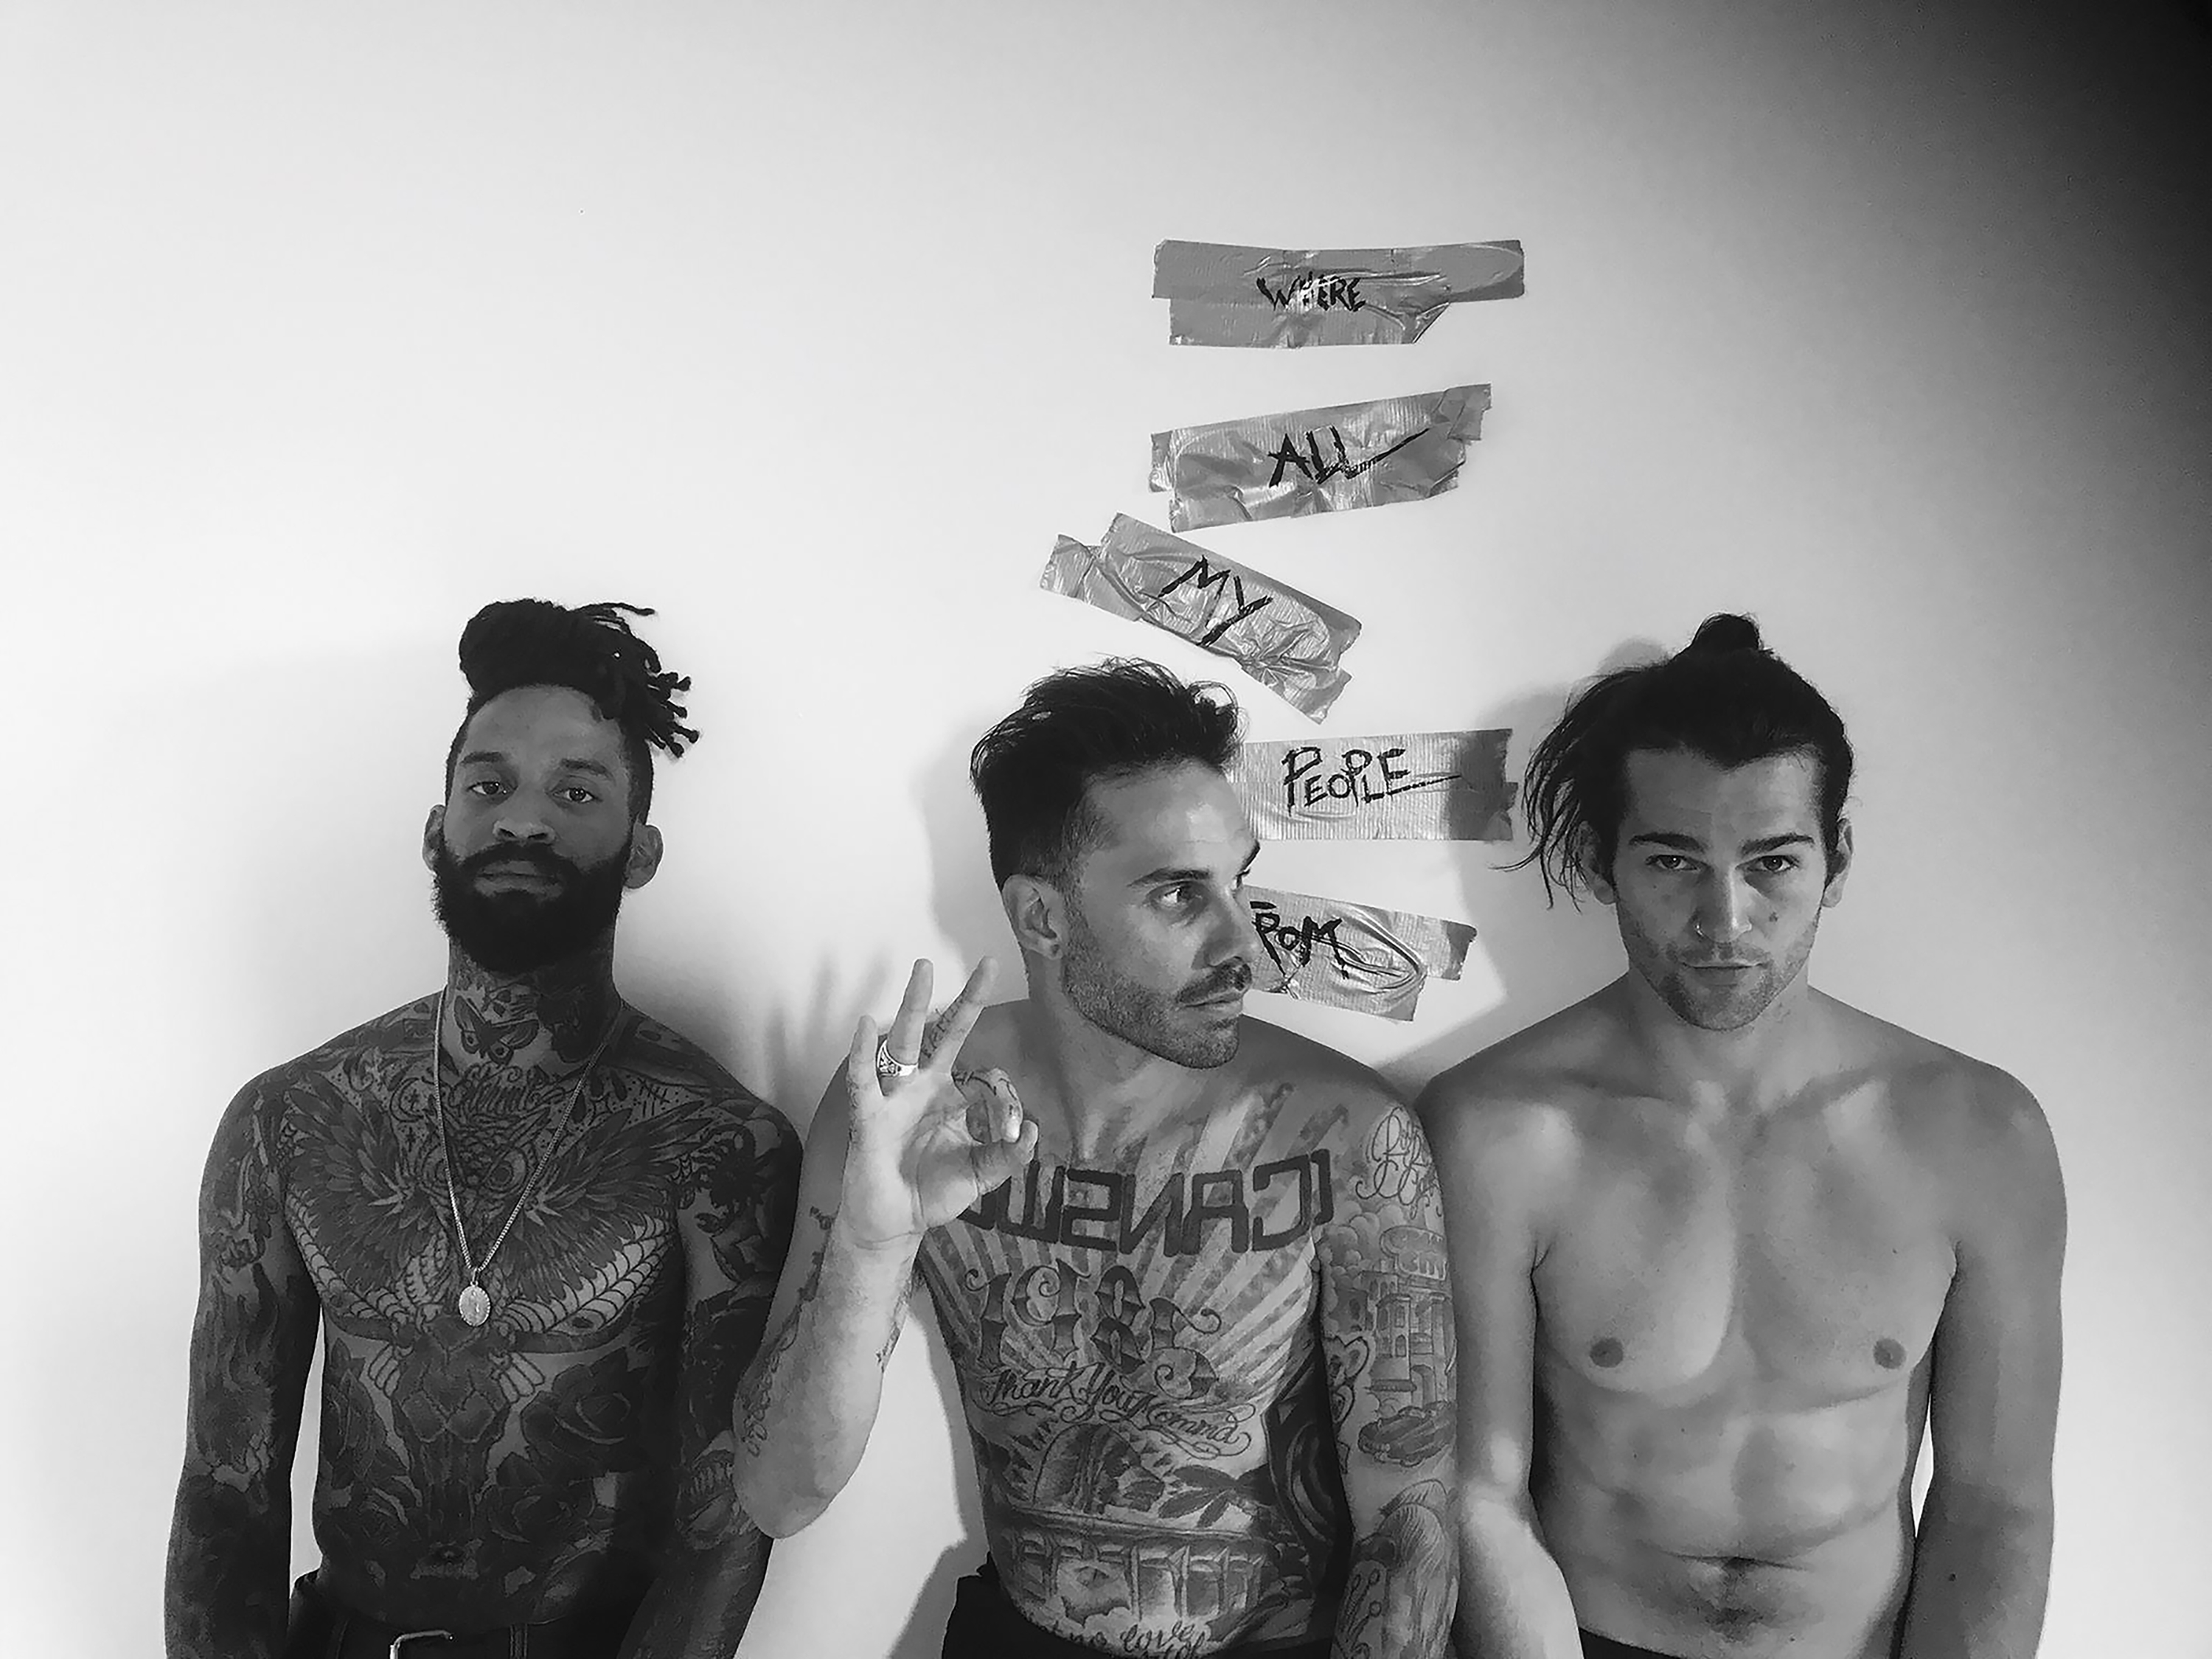 THE FEVER 333 give you 'Trigger'